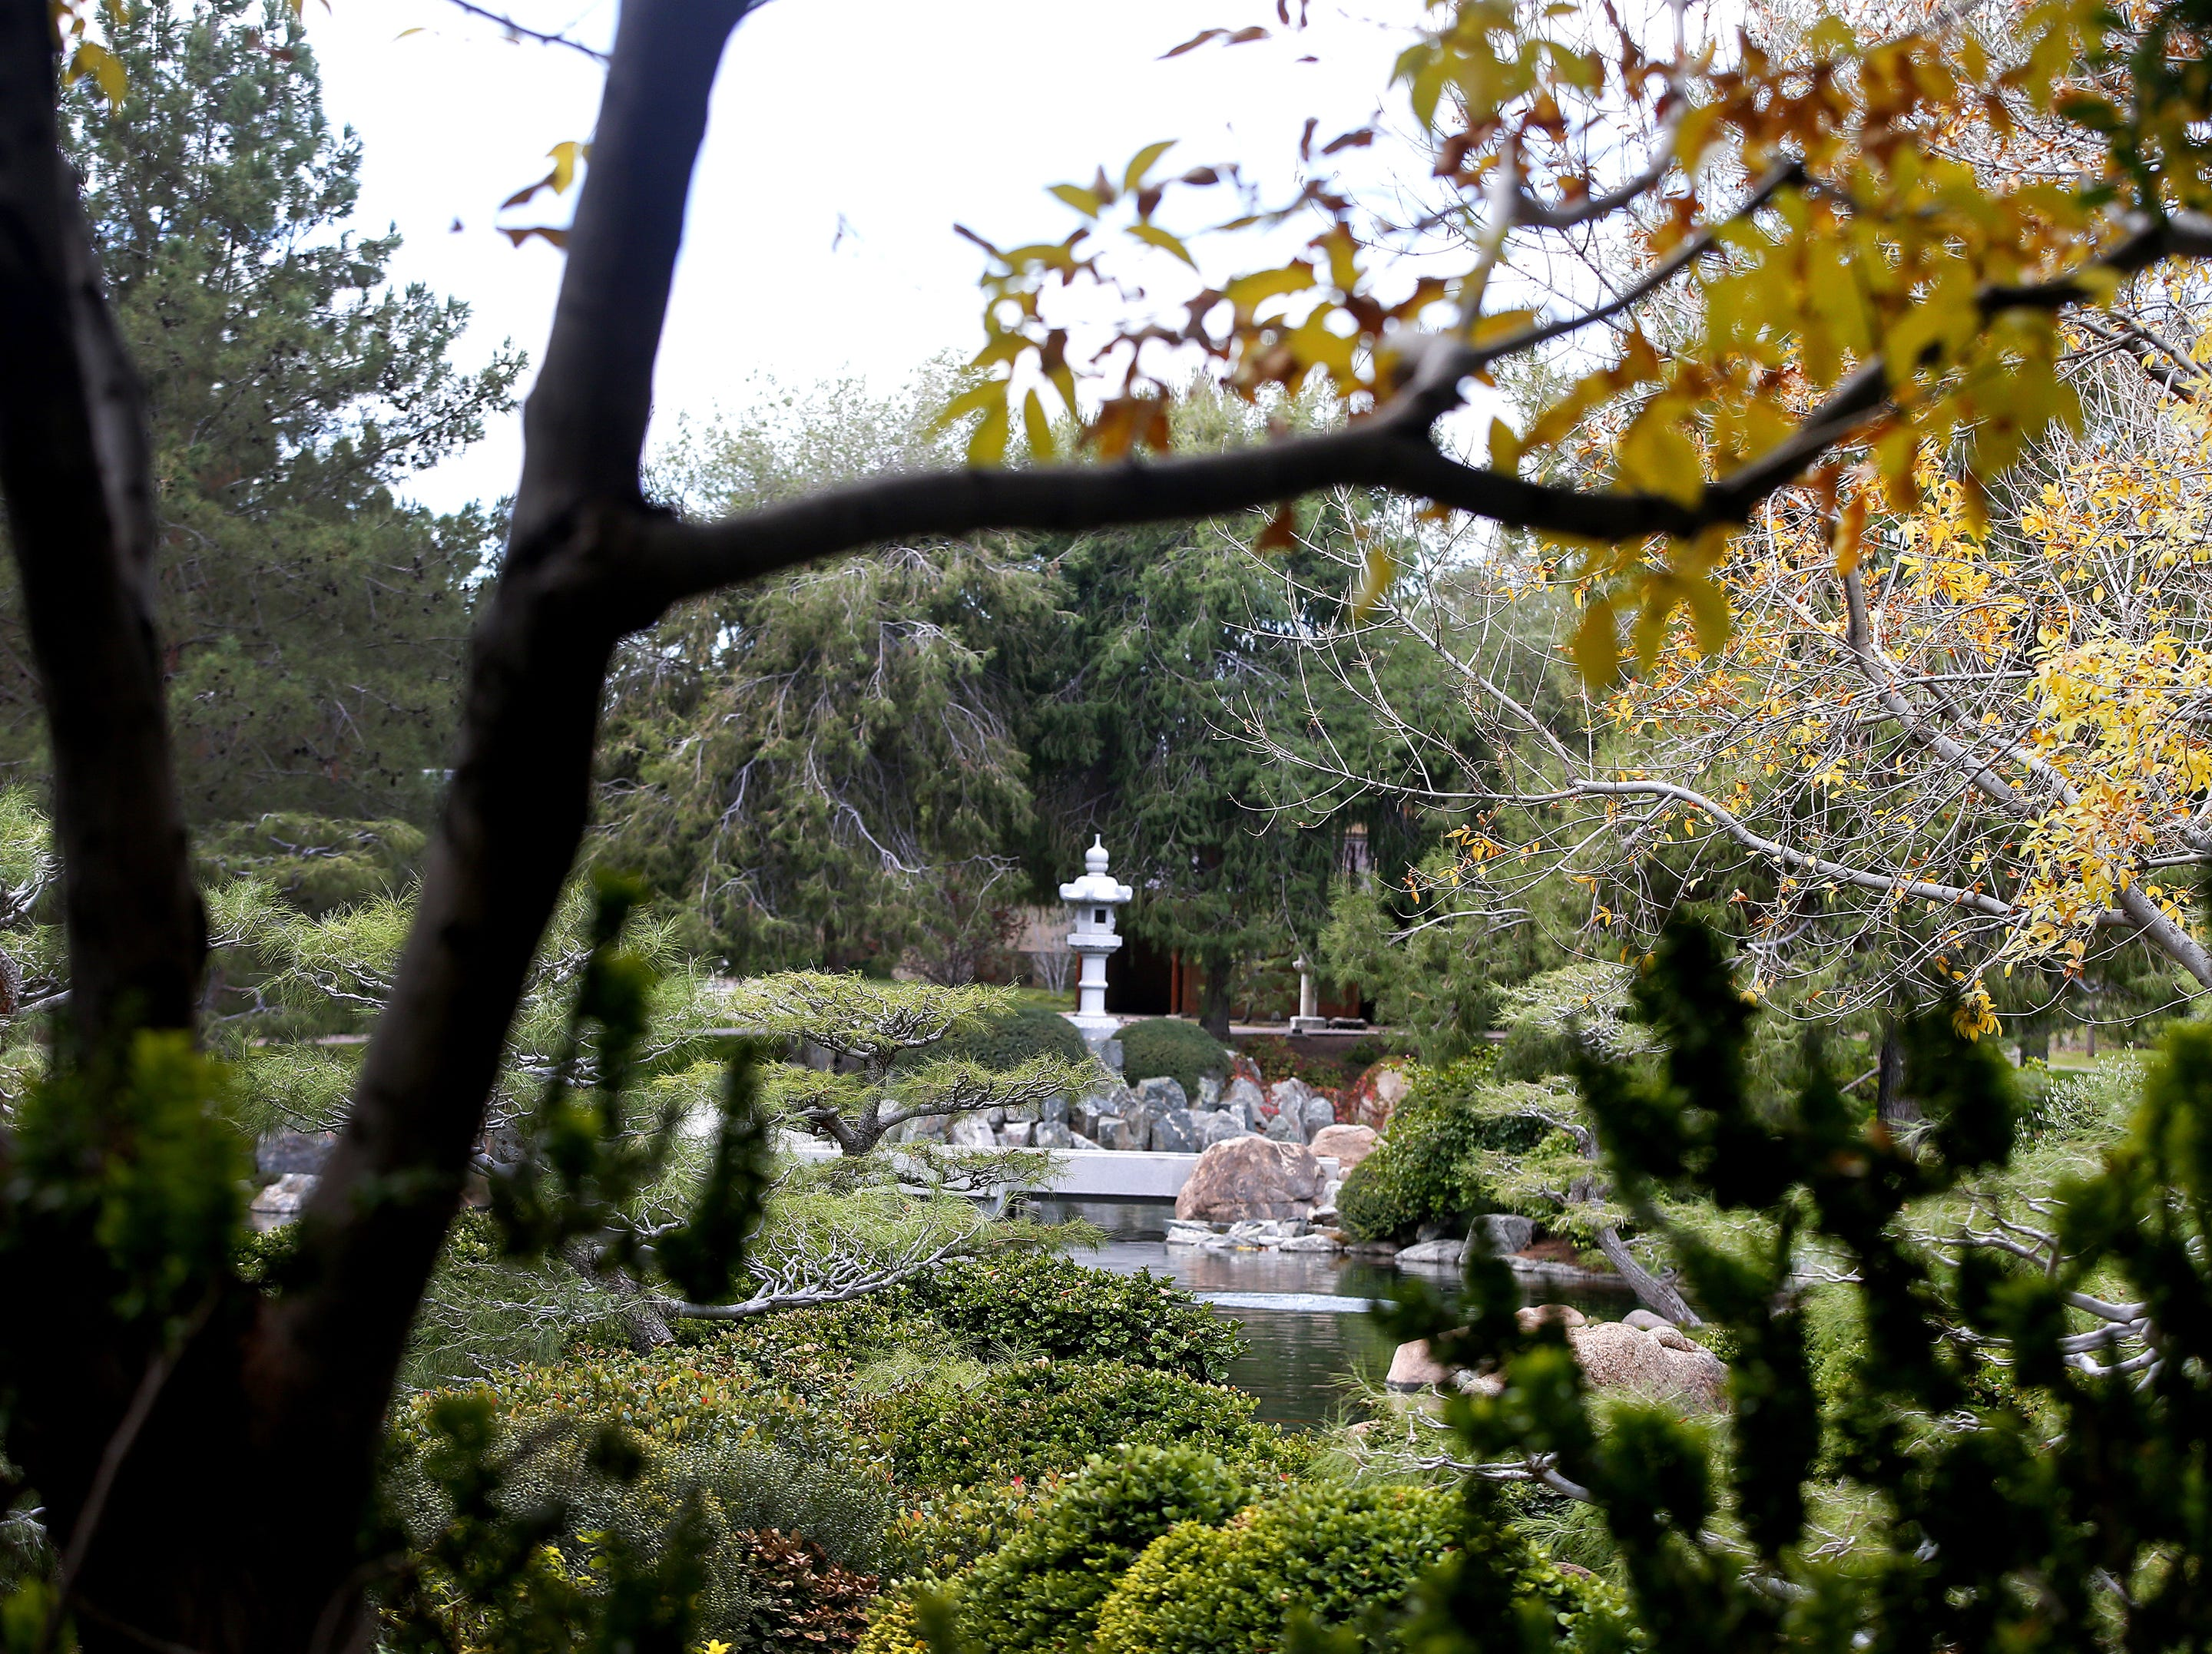 Japanese Friendship Garden located in the heart of downtown allows visitors to stroll through a peaceful and relaxing park.